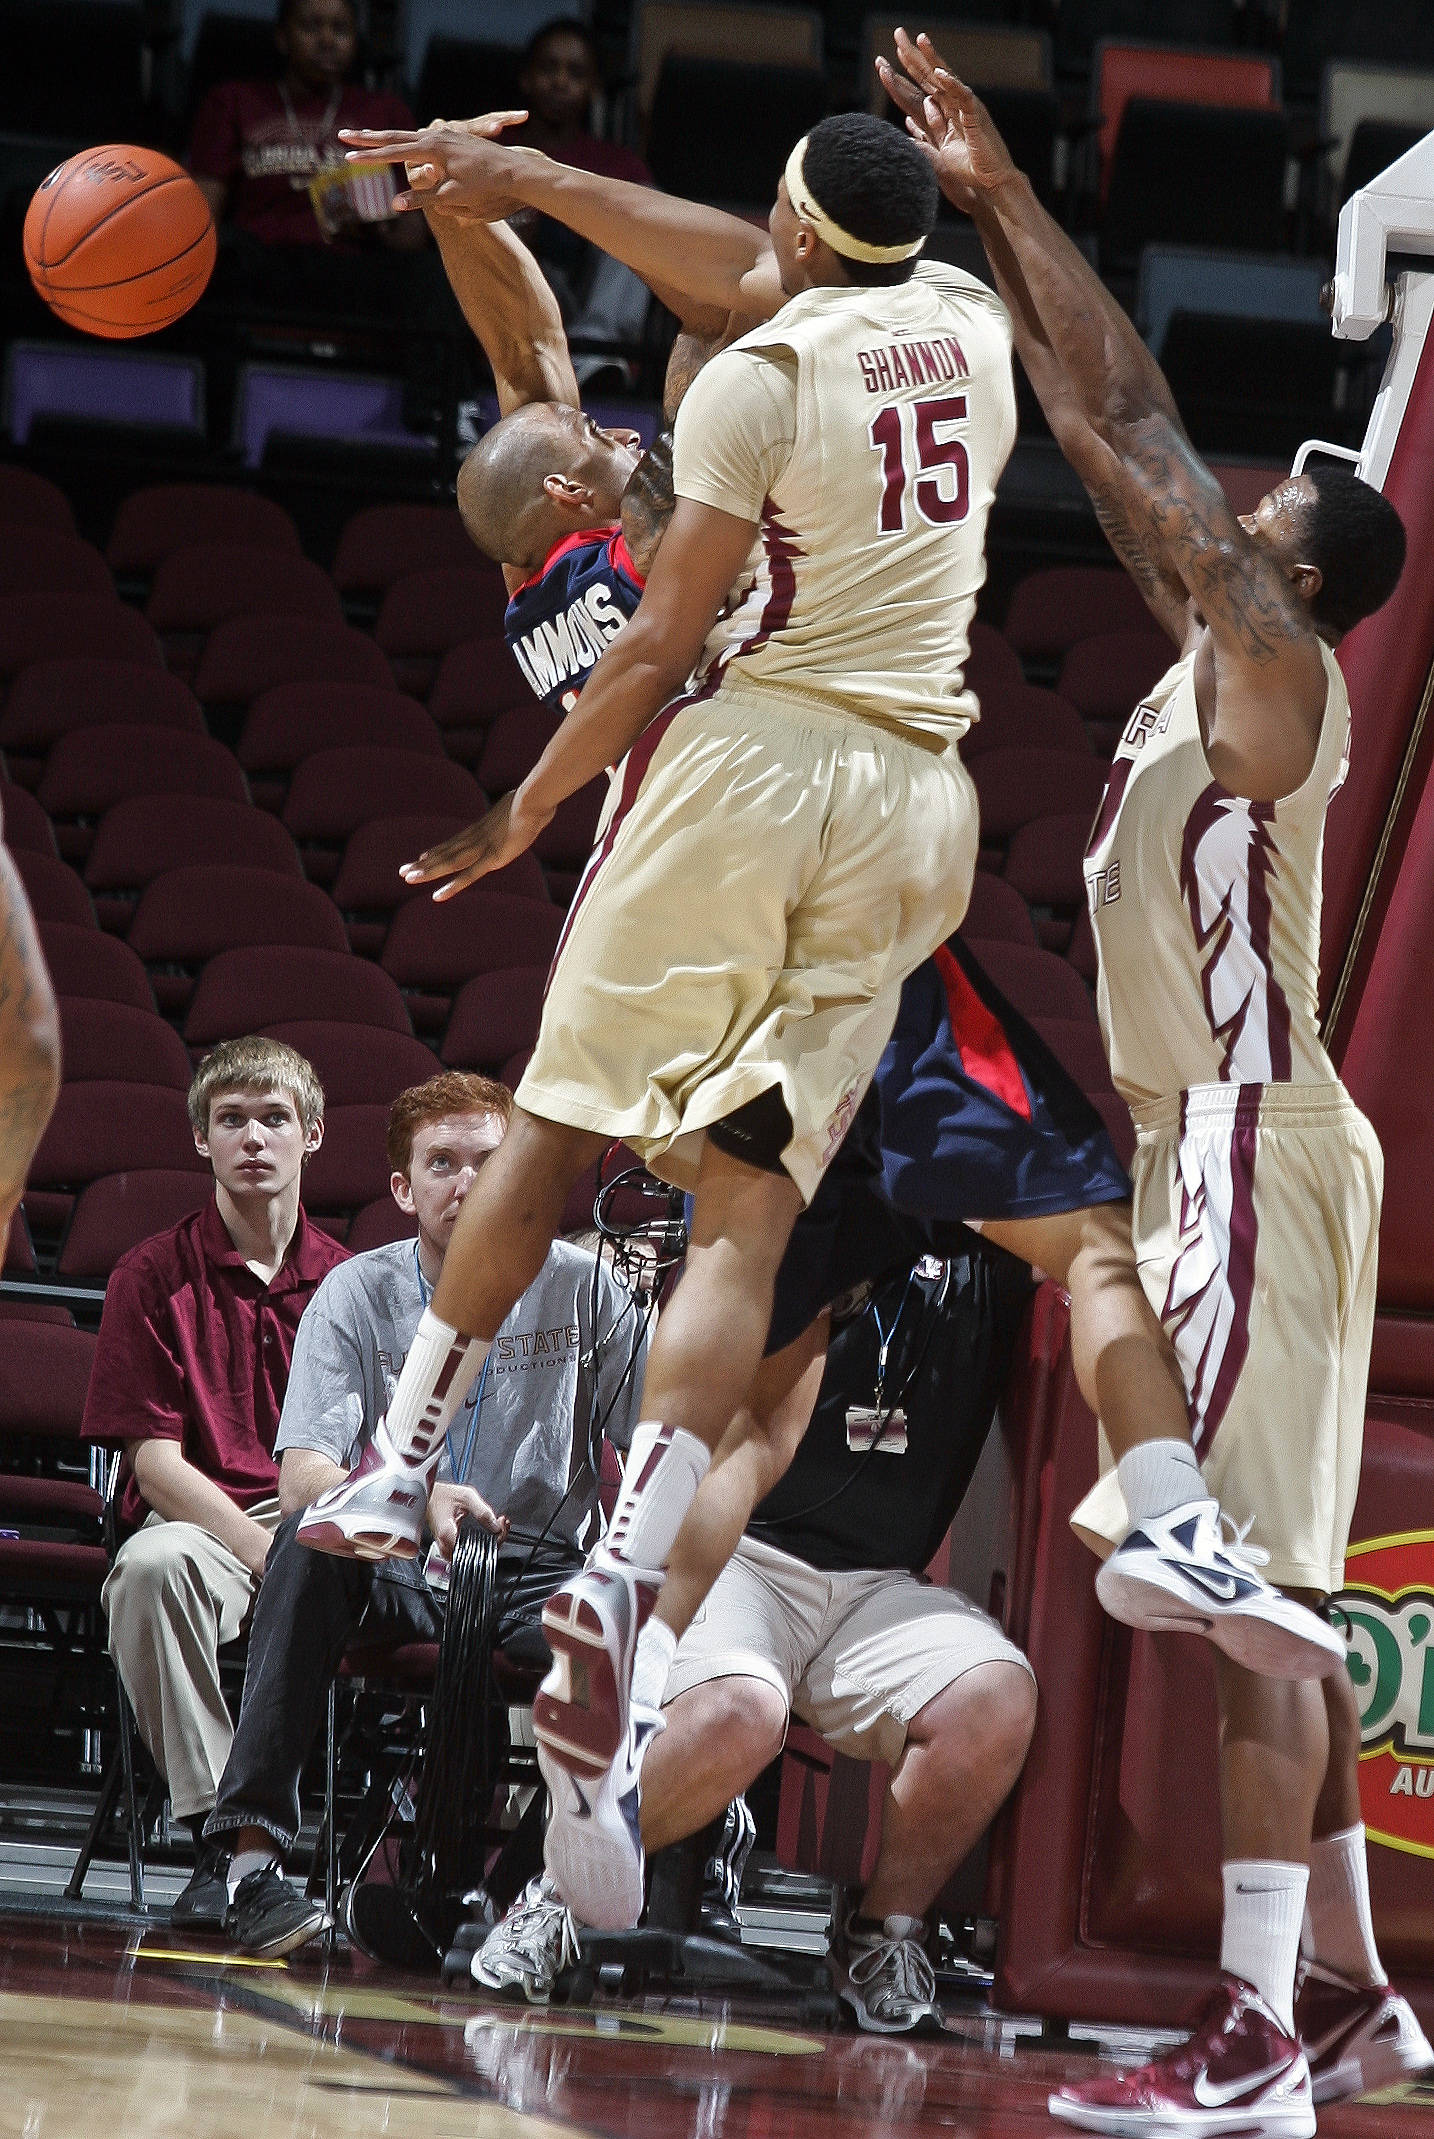 Florida State forward Terrance Shannon (15) rejects a shot by South Alabama guard Mychal Ammons (13). (AP Photo/Phil Sears)